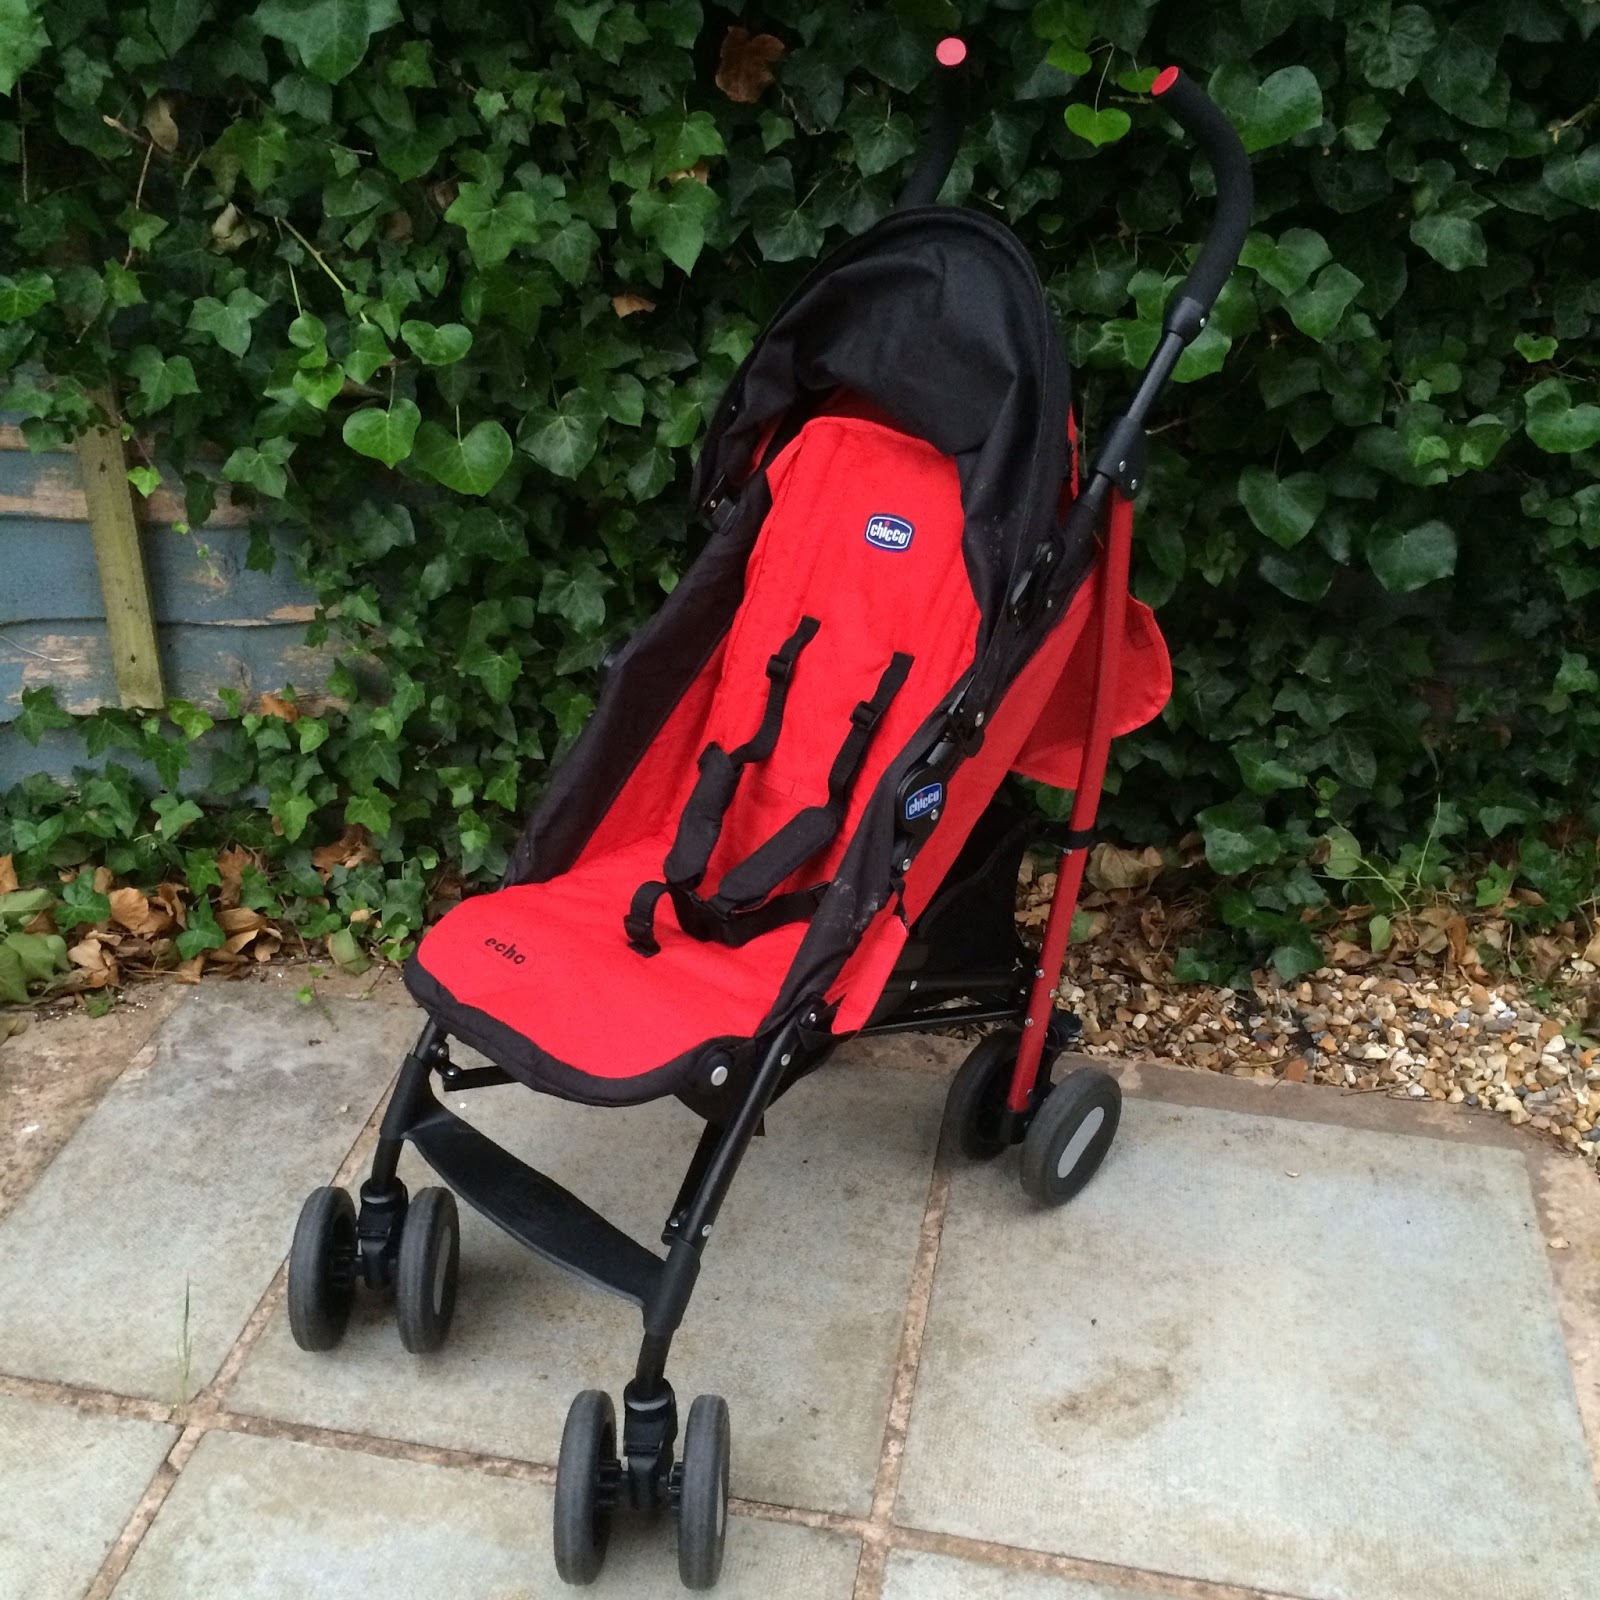 The Knott Bump Amp Us Chicco Echo Stroller Review